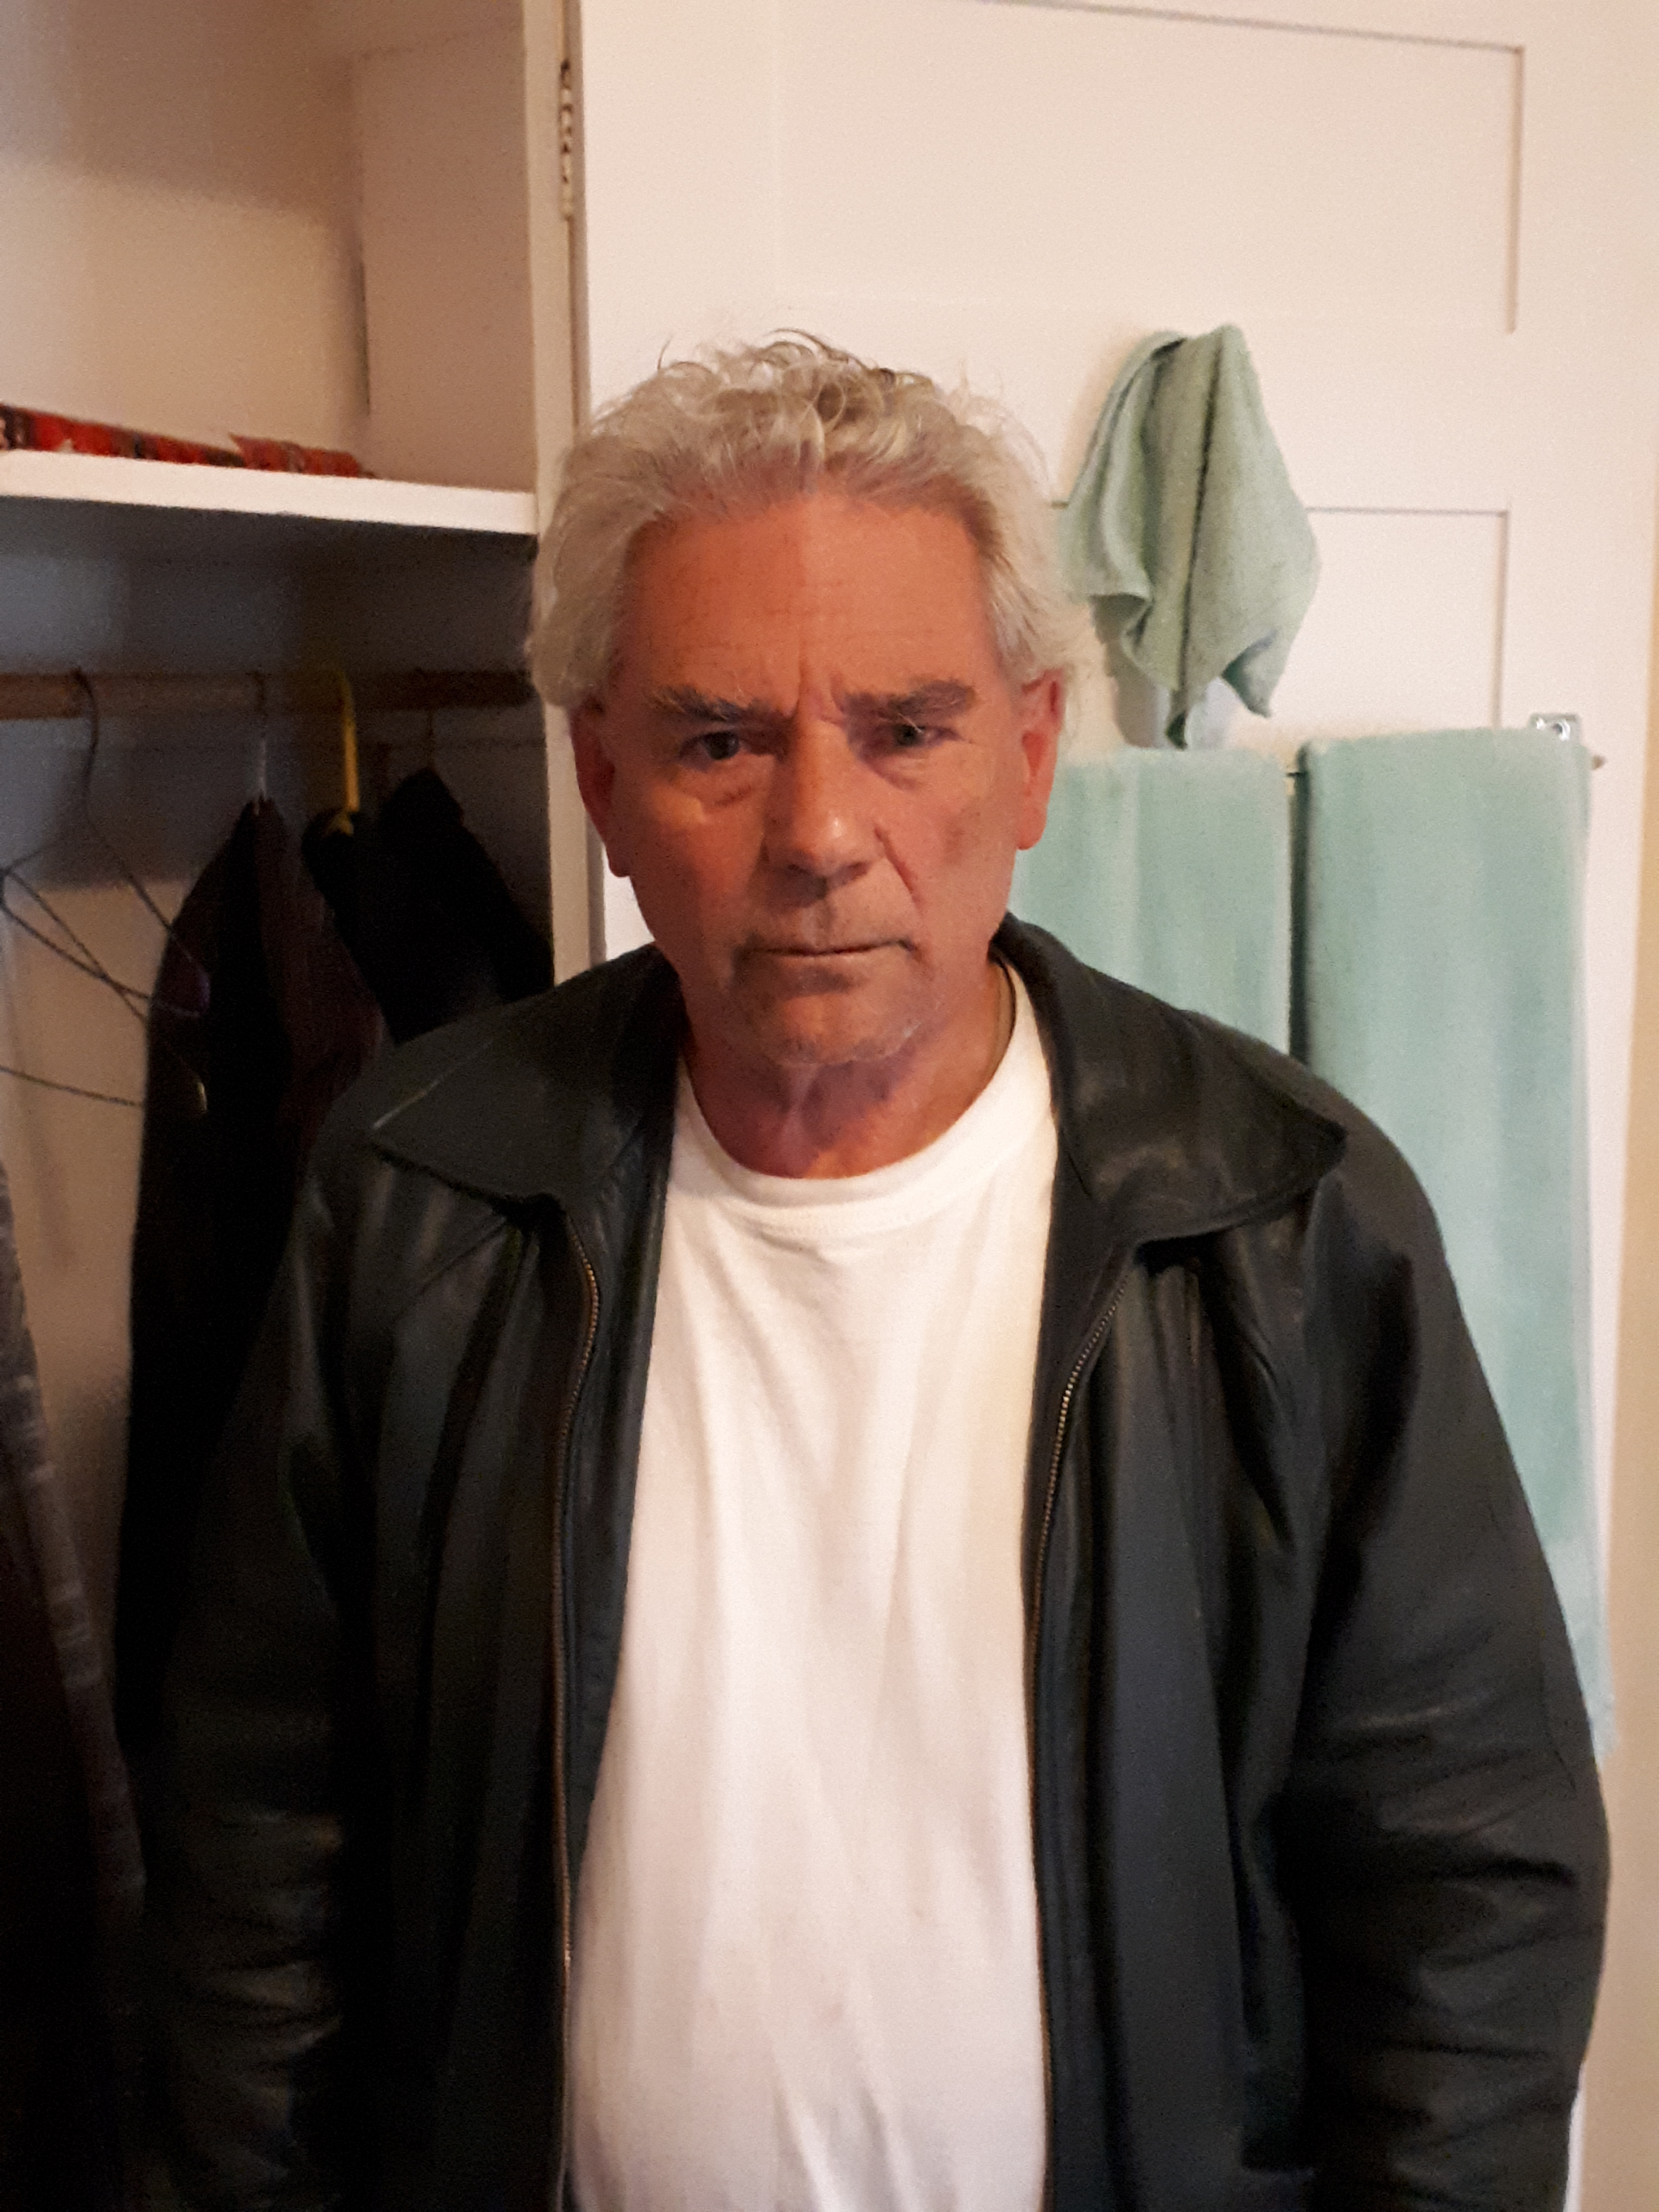 Public Alert – Police concerned for 74 year old's welfare